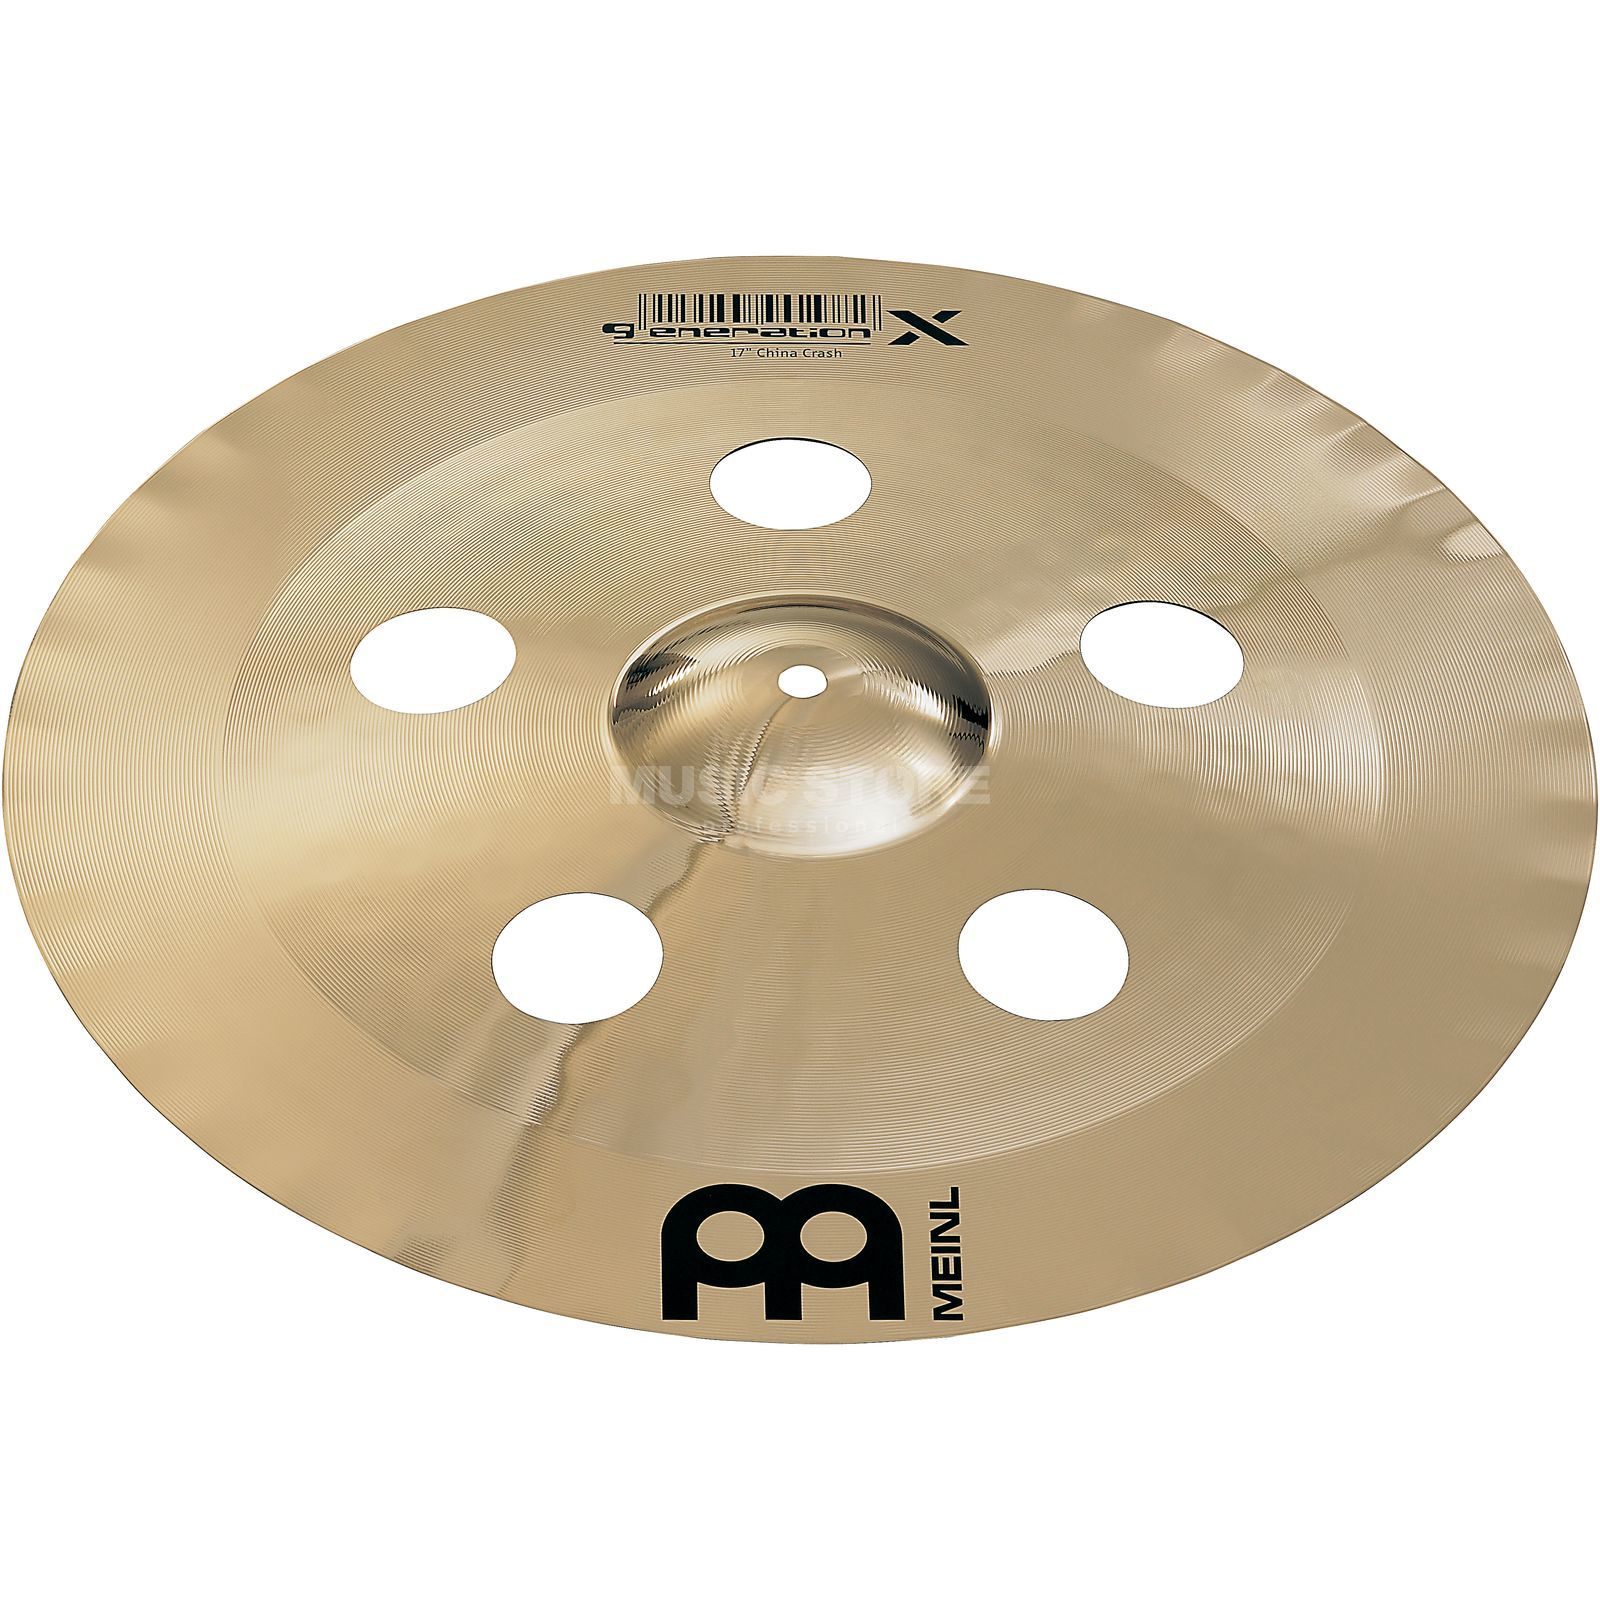 "Meinl Generation X China Crash 17"", GX-17CHC-B Produktbillede"